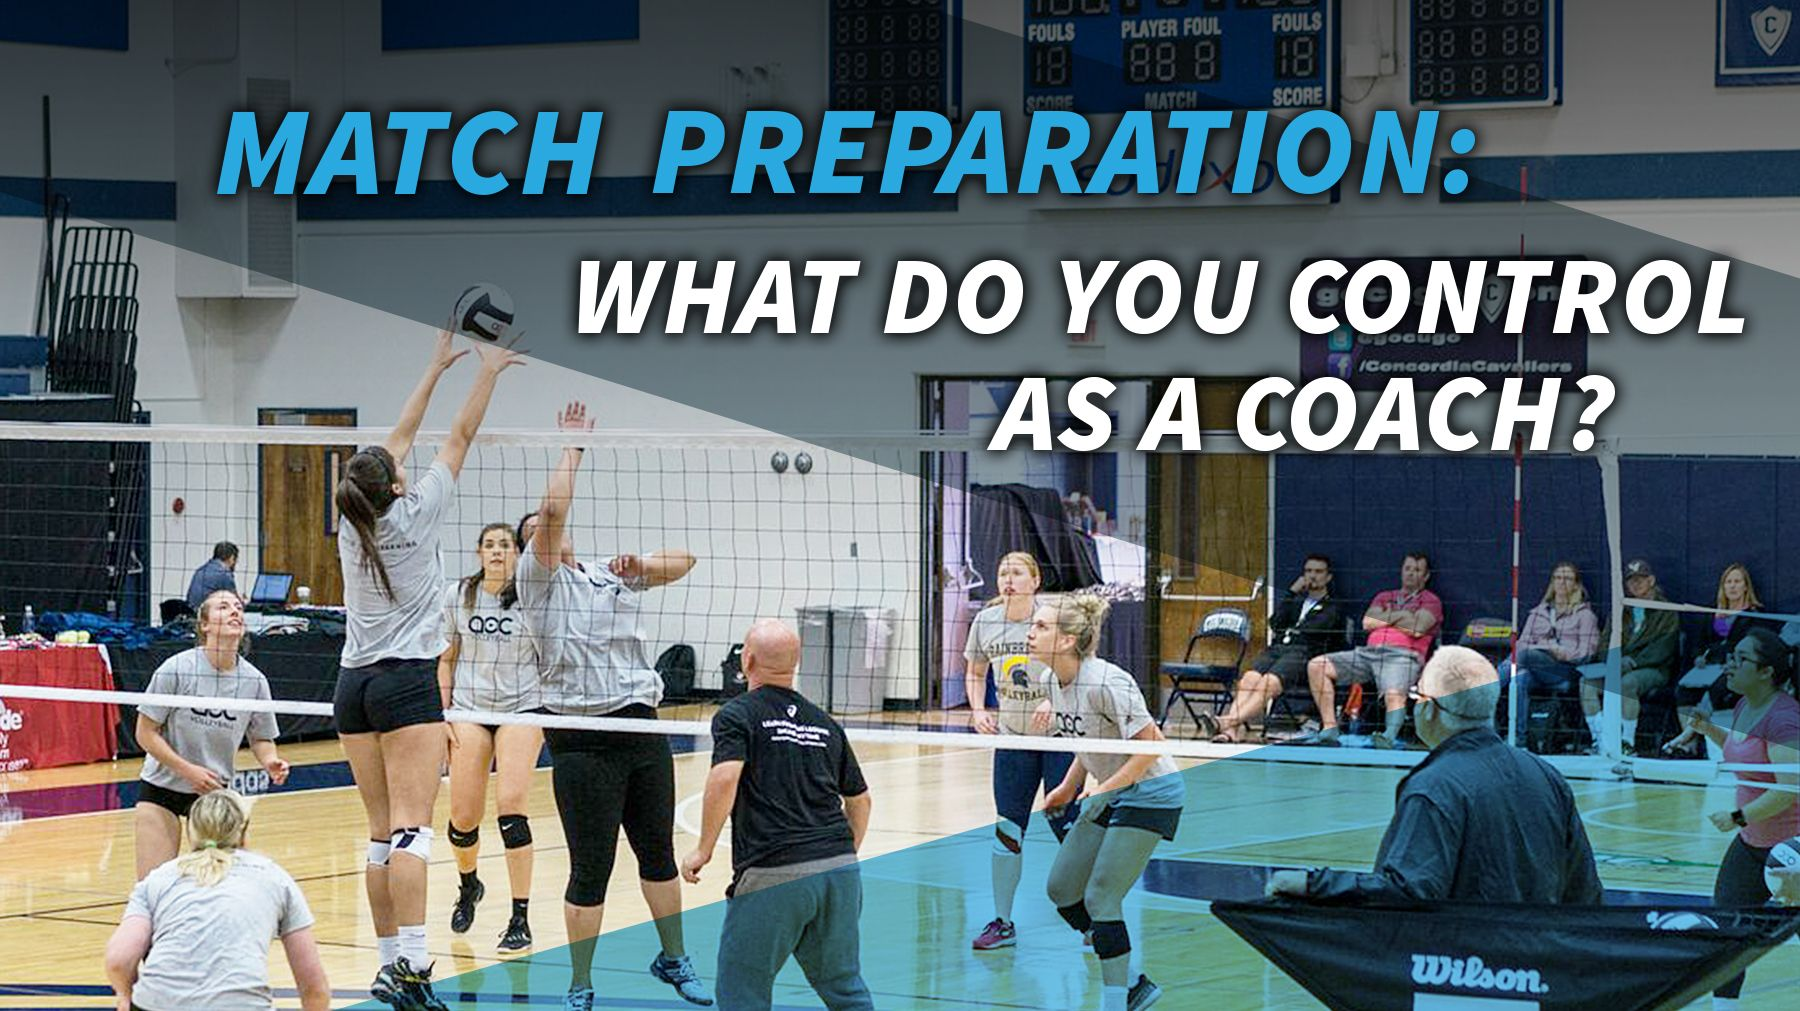 Do You Evaluate Your Team After Every Match Performance Indicators Can Help You To Better Evaluate A Game And Prepare Coaching Volleyball Coaching Pe Teachers